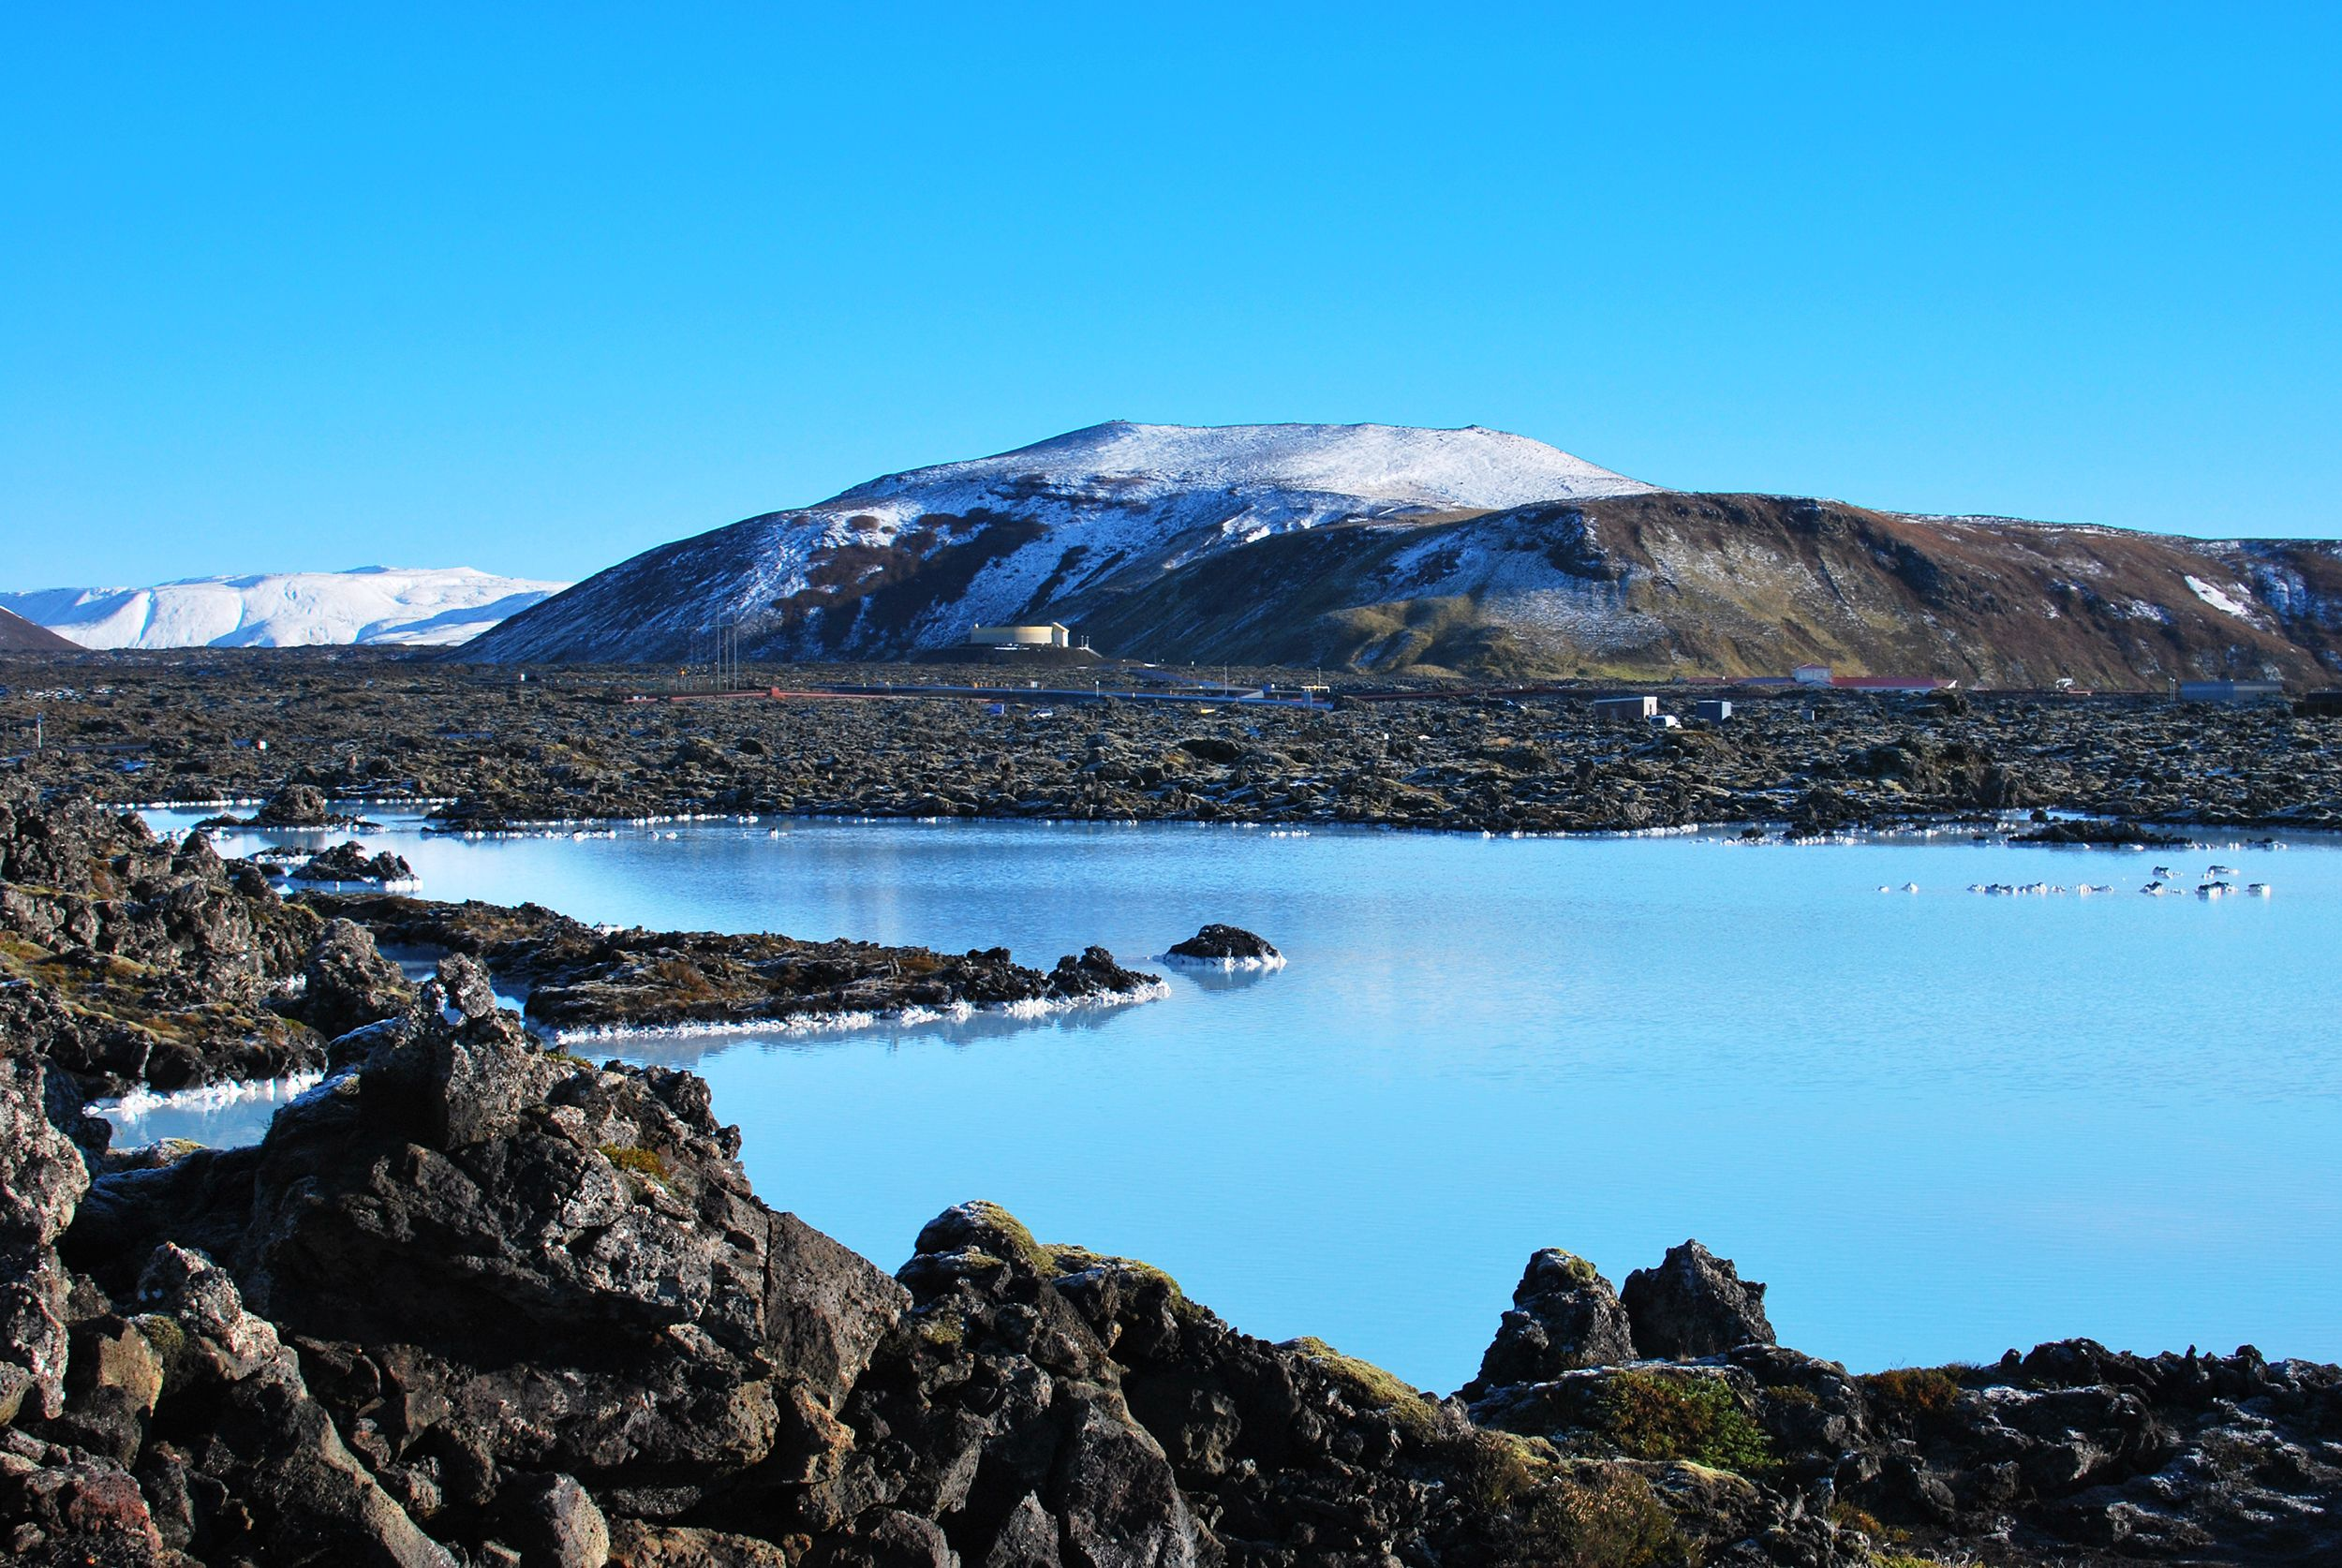 Beautiful landscape view of the Blue Lagoon in Iceland